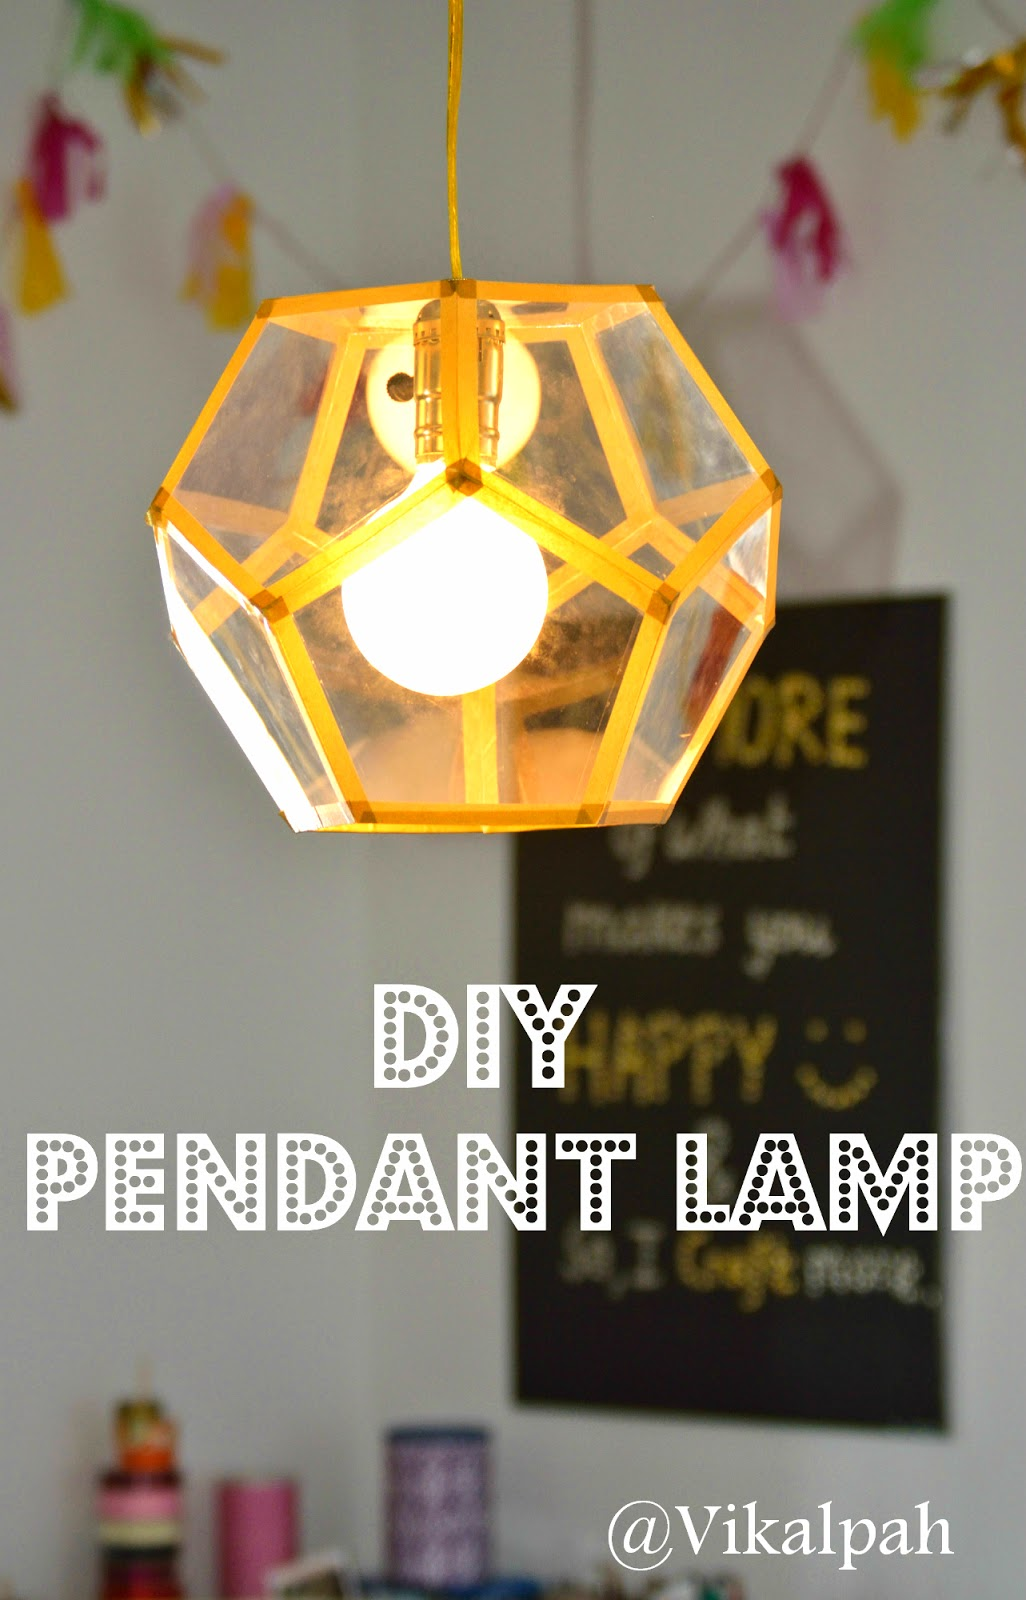 Vikalpah diy pendant lamp friday august 15 2014 aloadofball Image collections